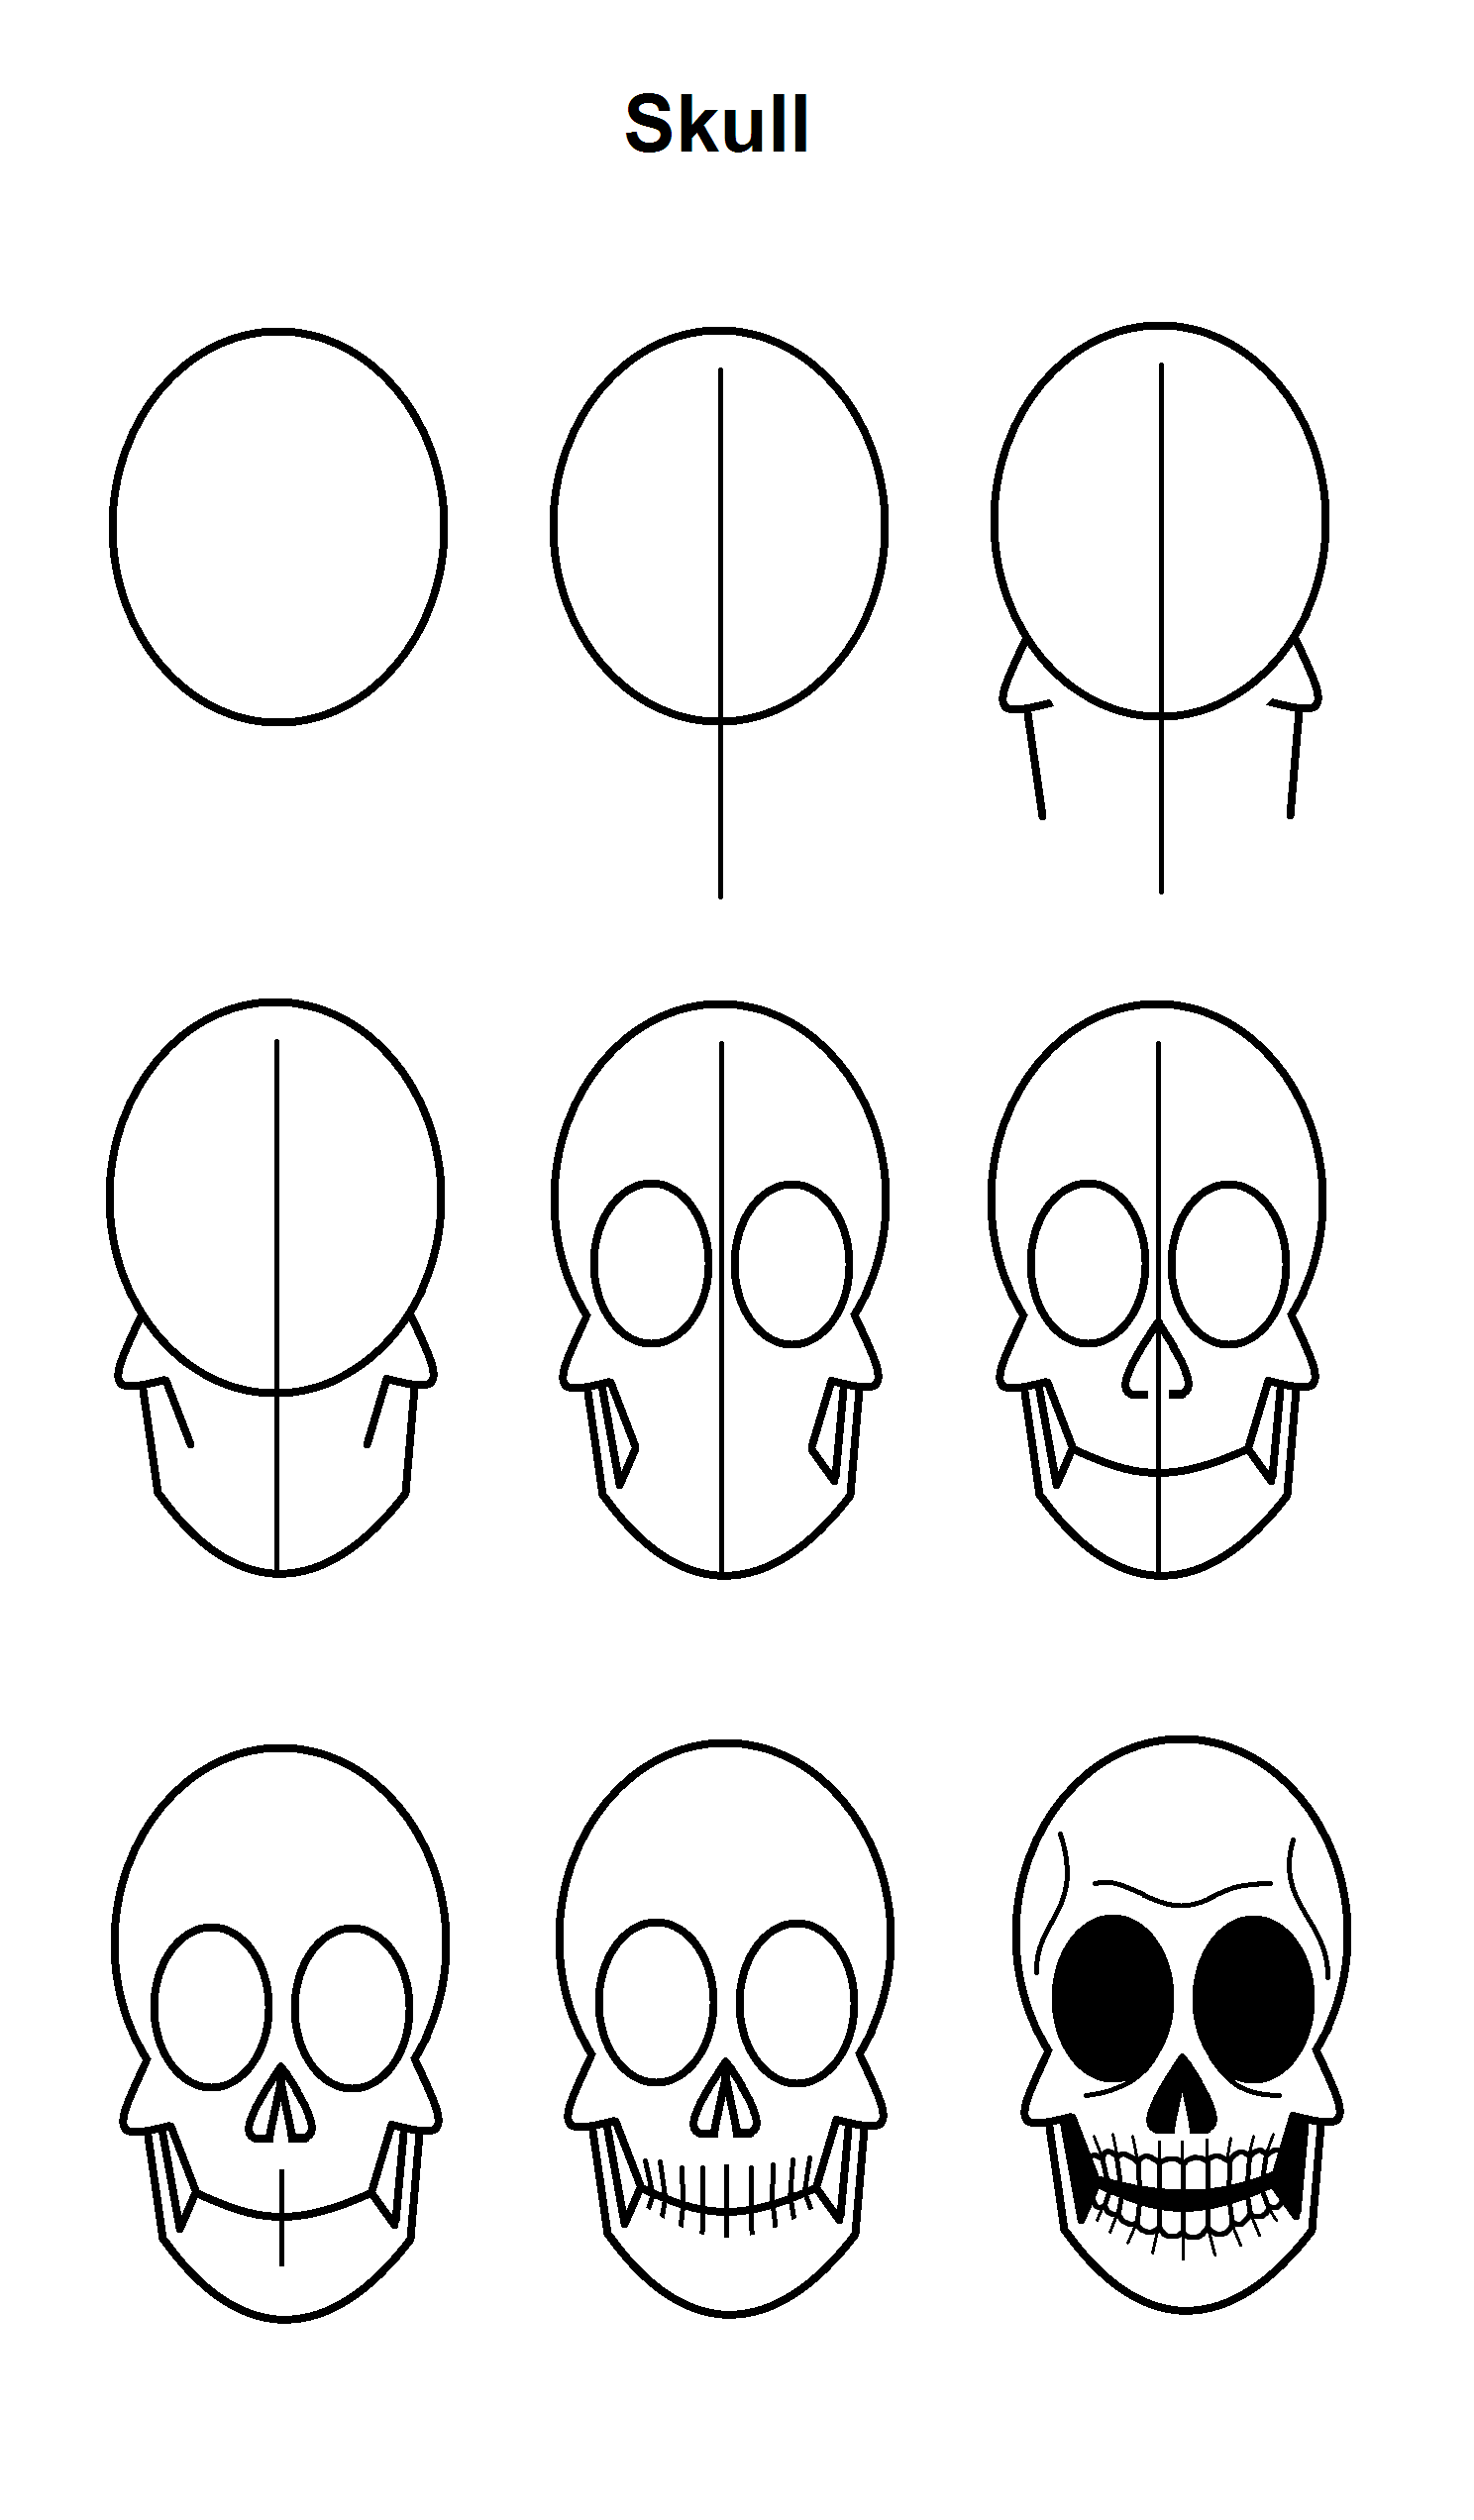 how to draw realistic skulls step by step 25 easy halloween drawings step by step for kids step draw skulls by step realistic how to